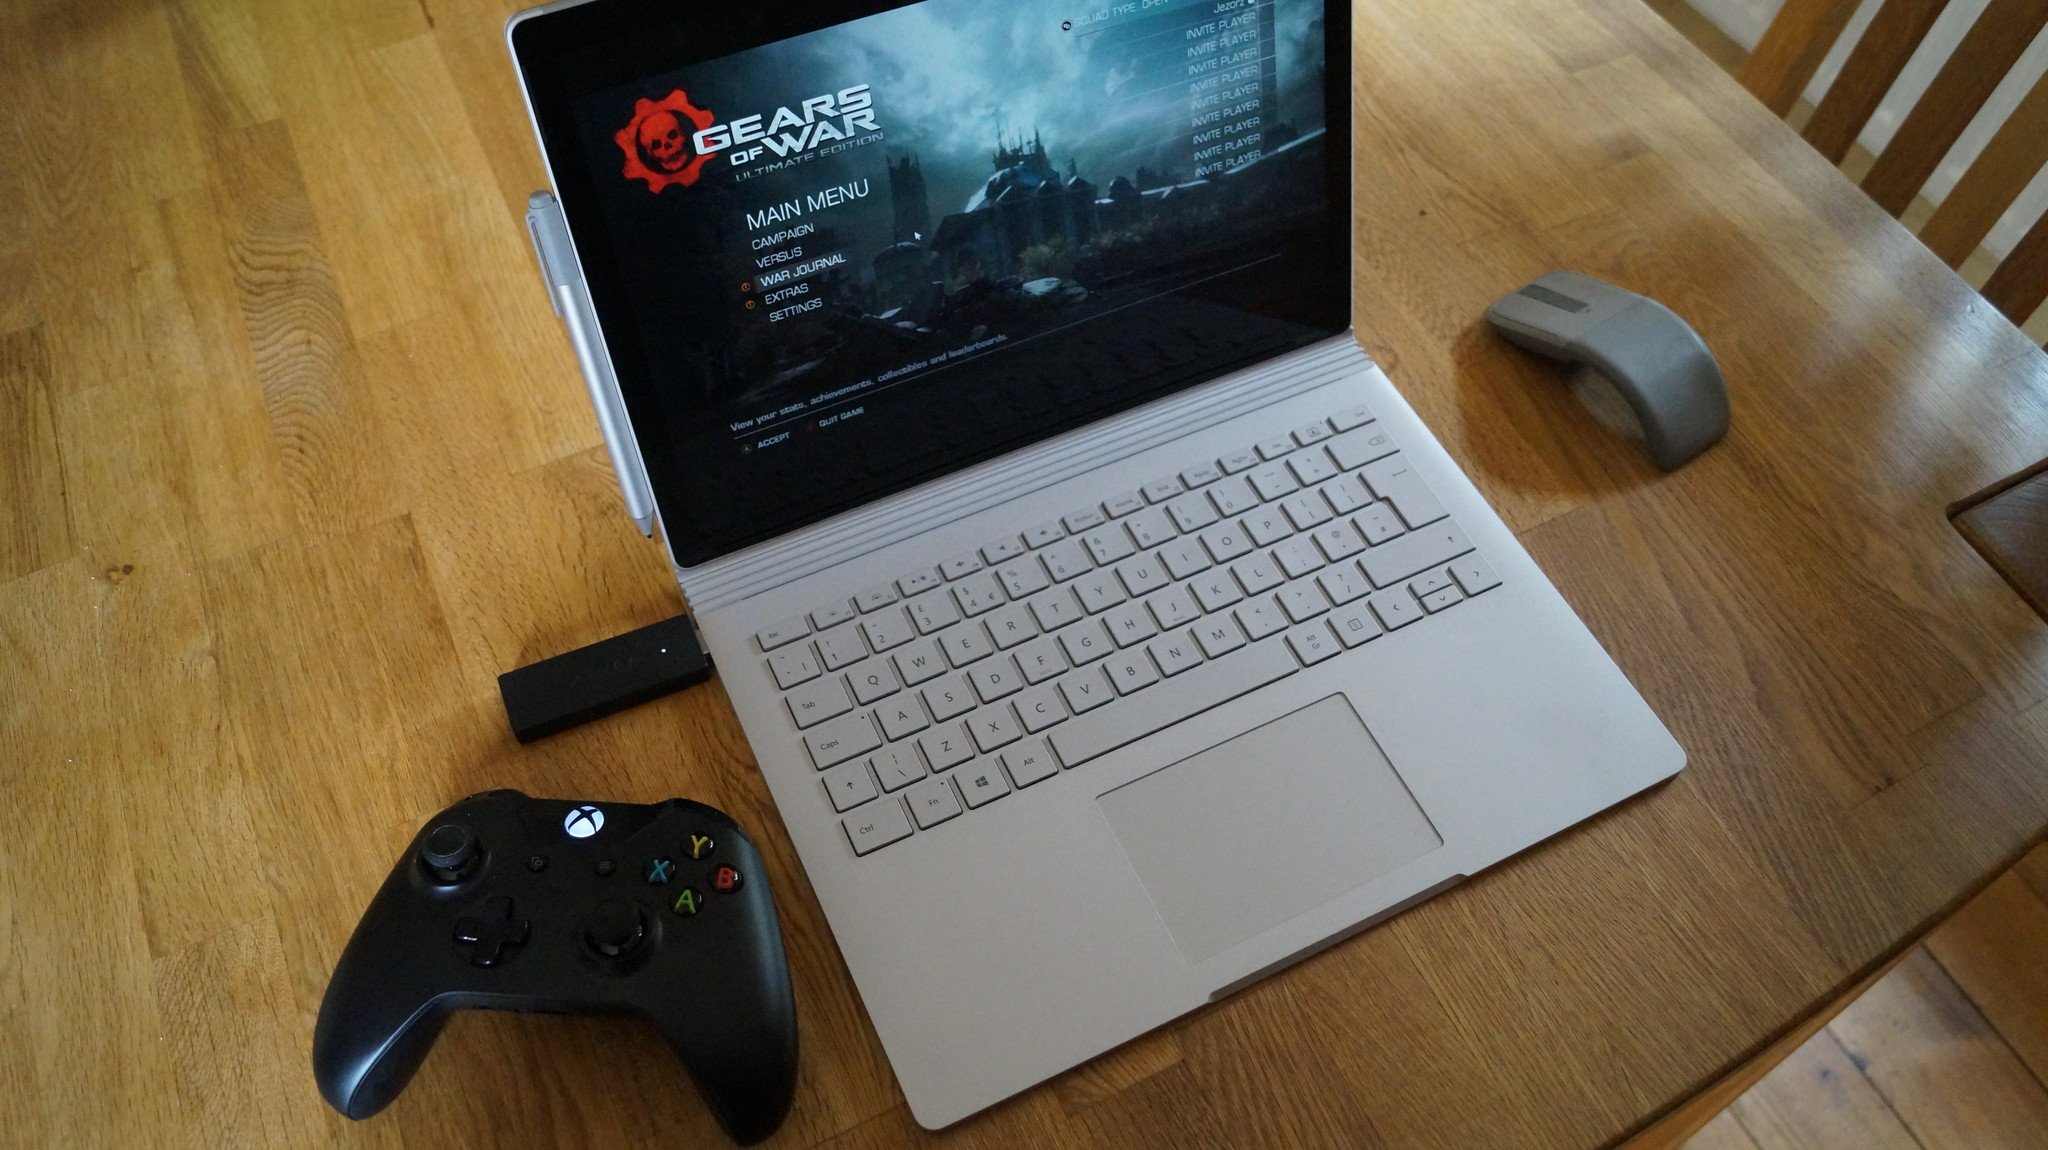 How To Pair A Wireless Xbox Controller With Your Xbox One Xbox One S Or Windows 10 Computer